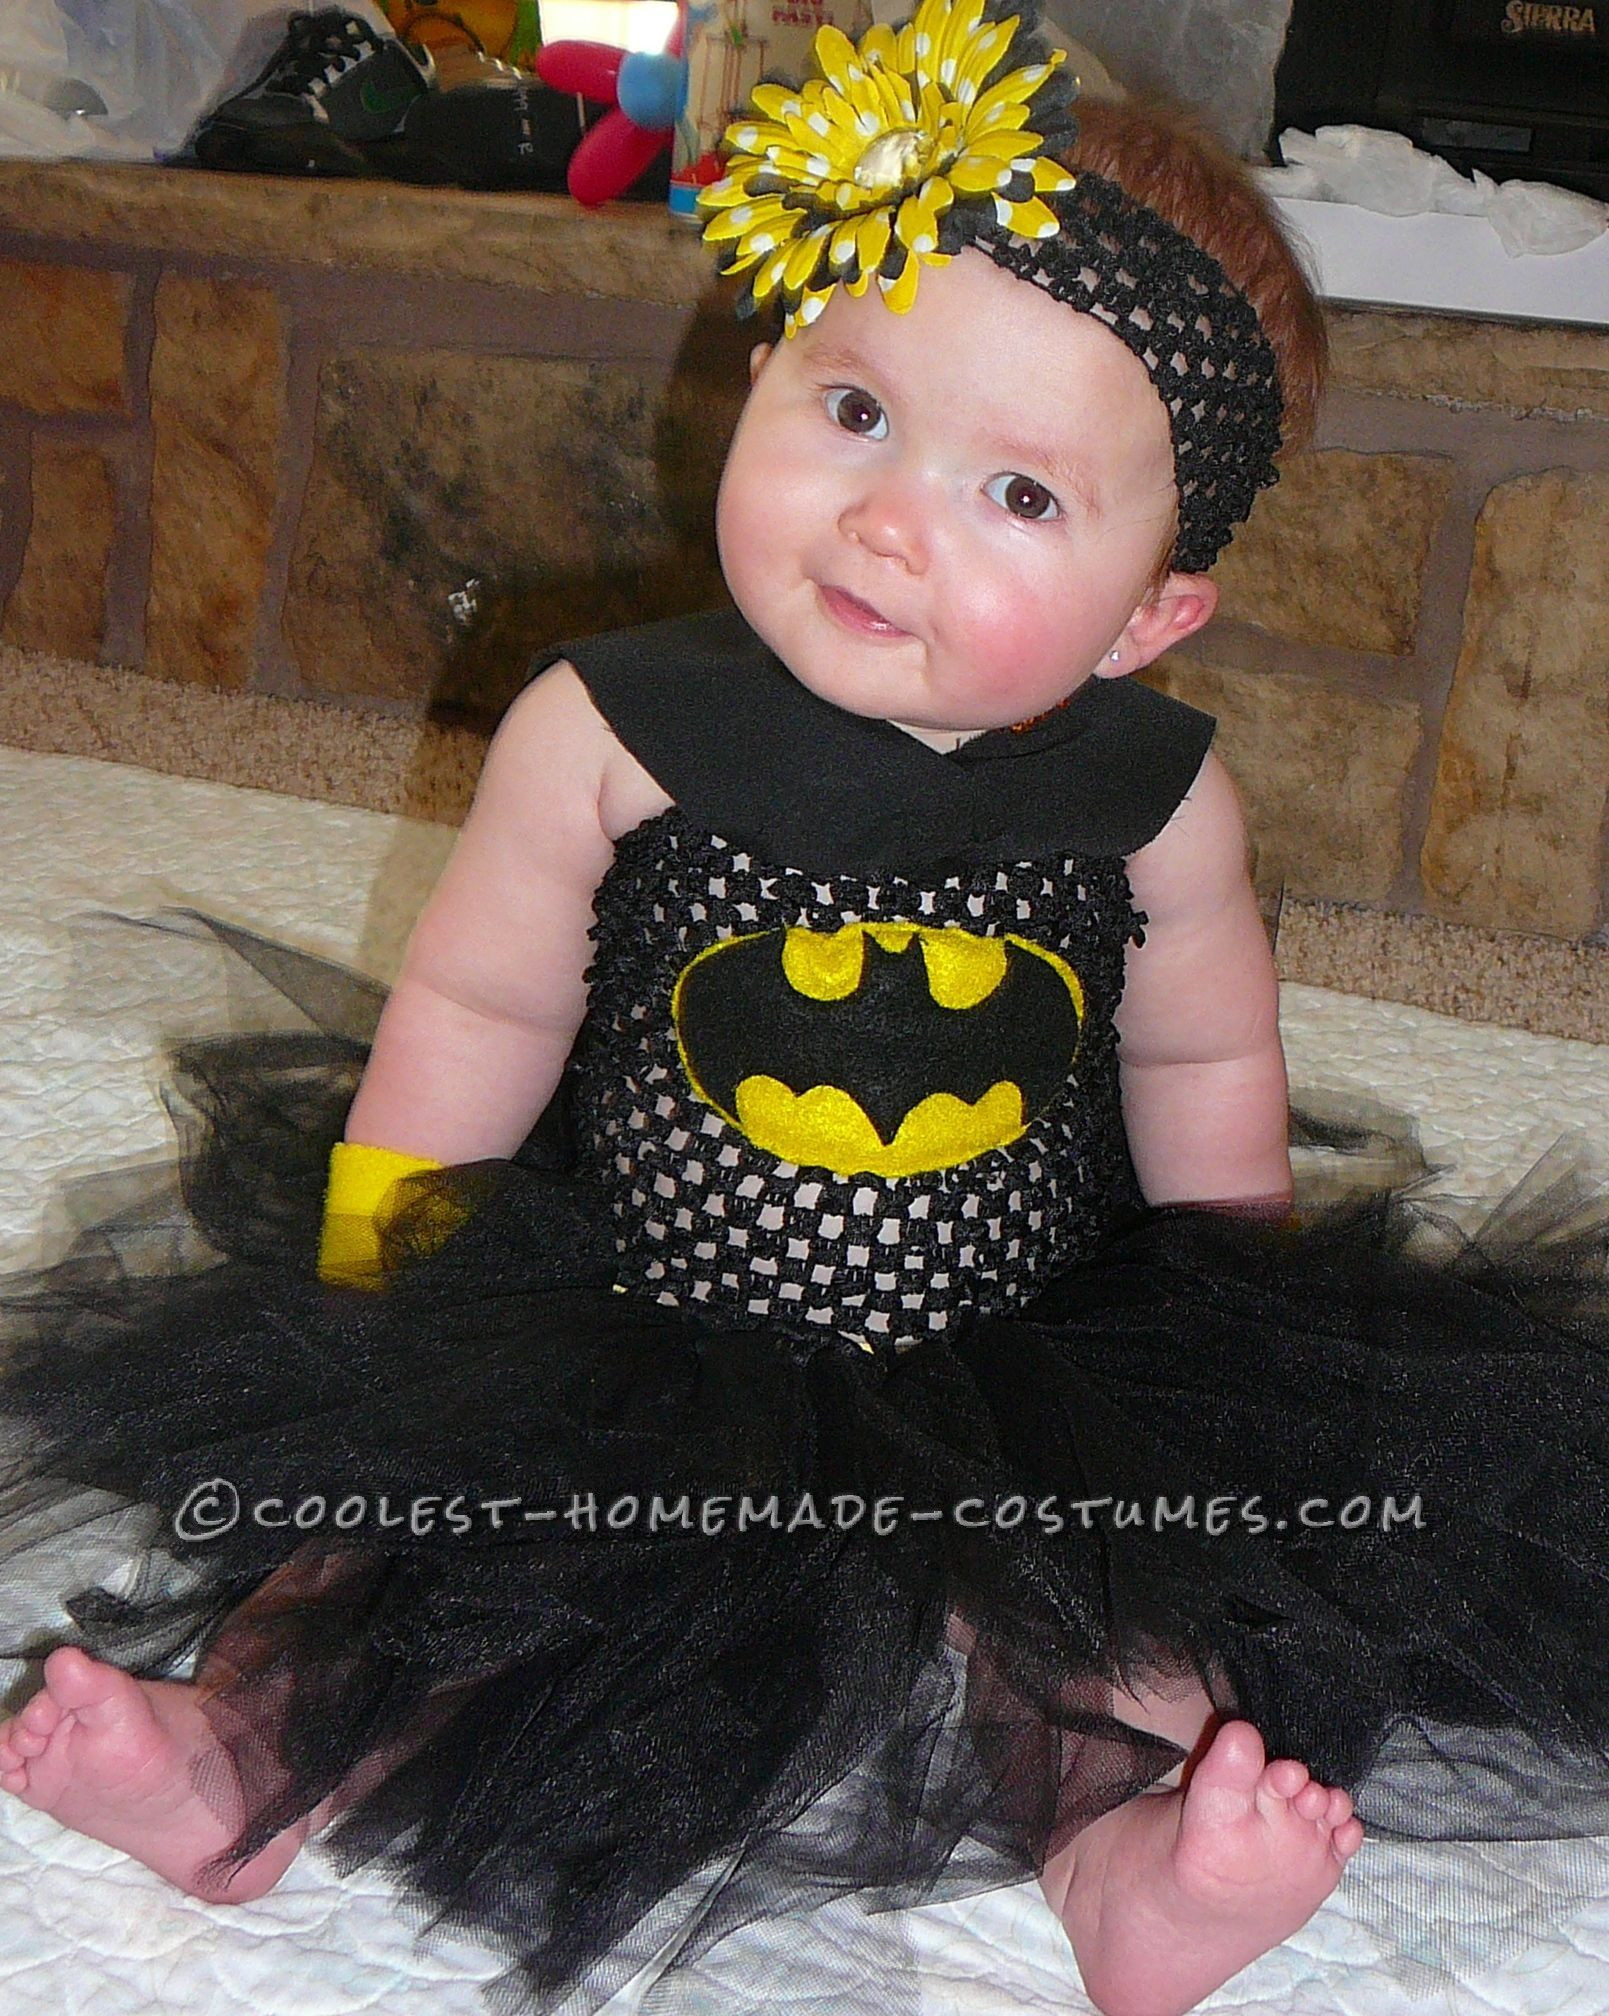 Best ideas about Baby Costume DIY . Save or Pin Best 25 Baby indian costume ideas on Pinterest Now.